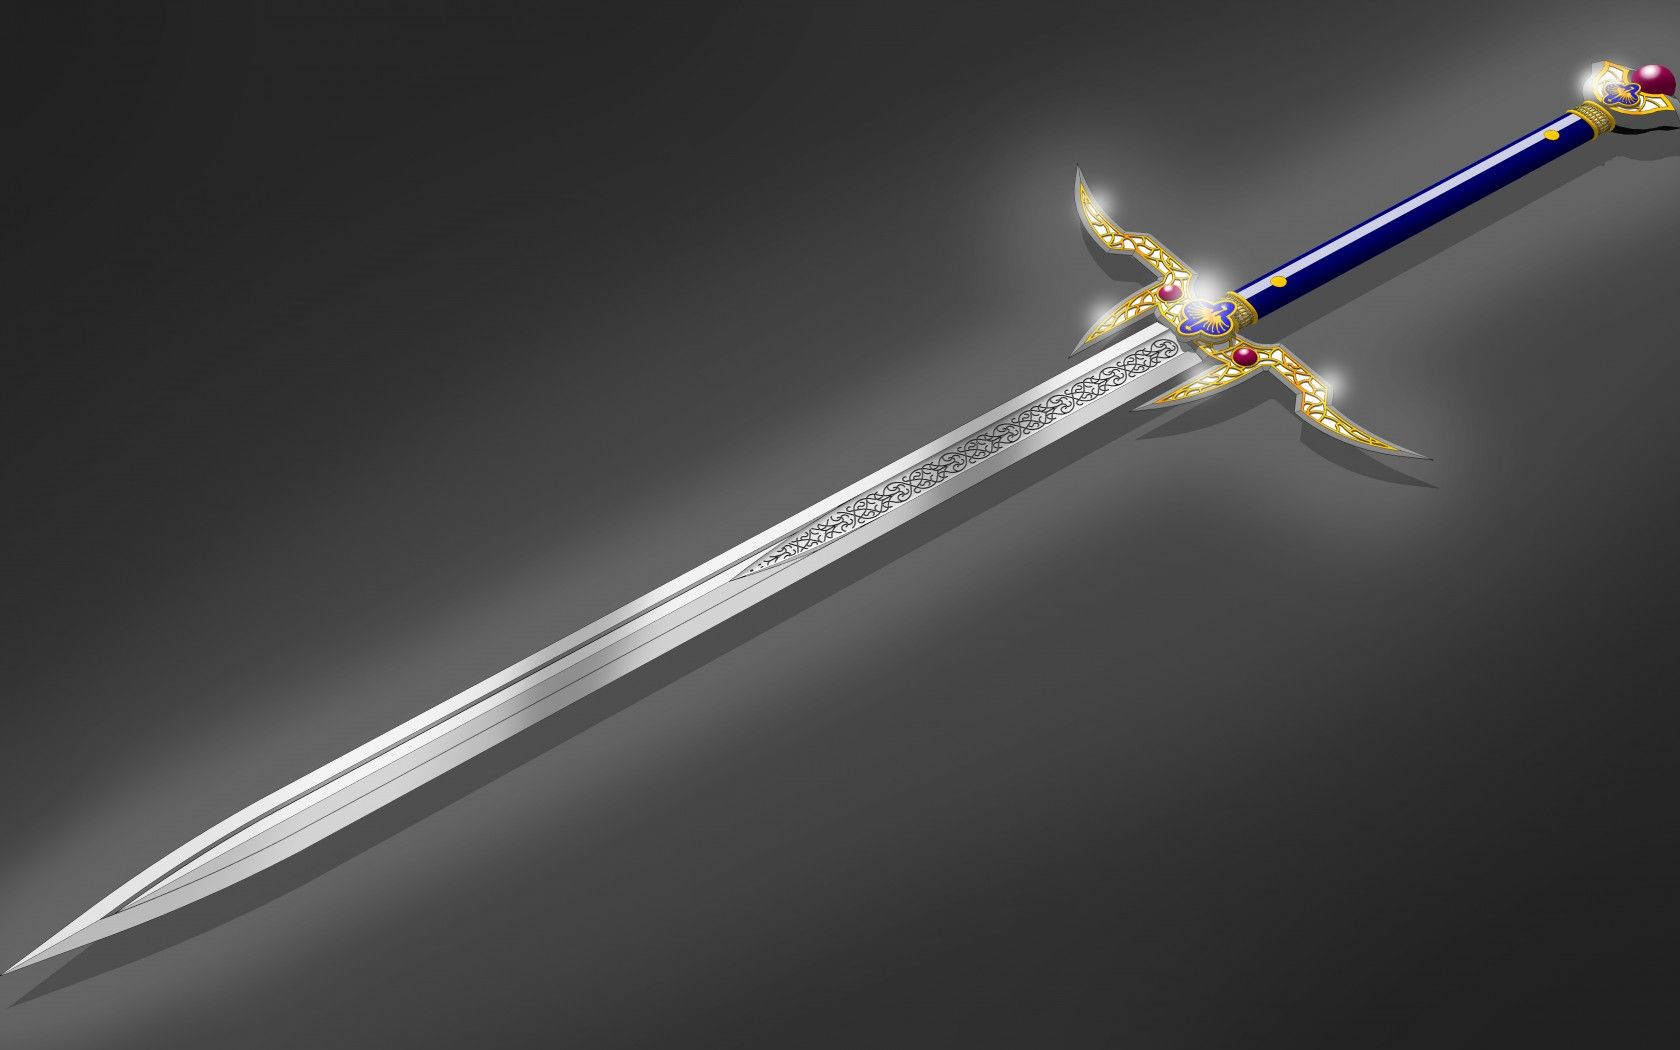 sword images free download